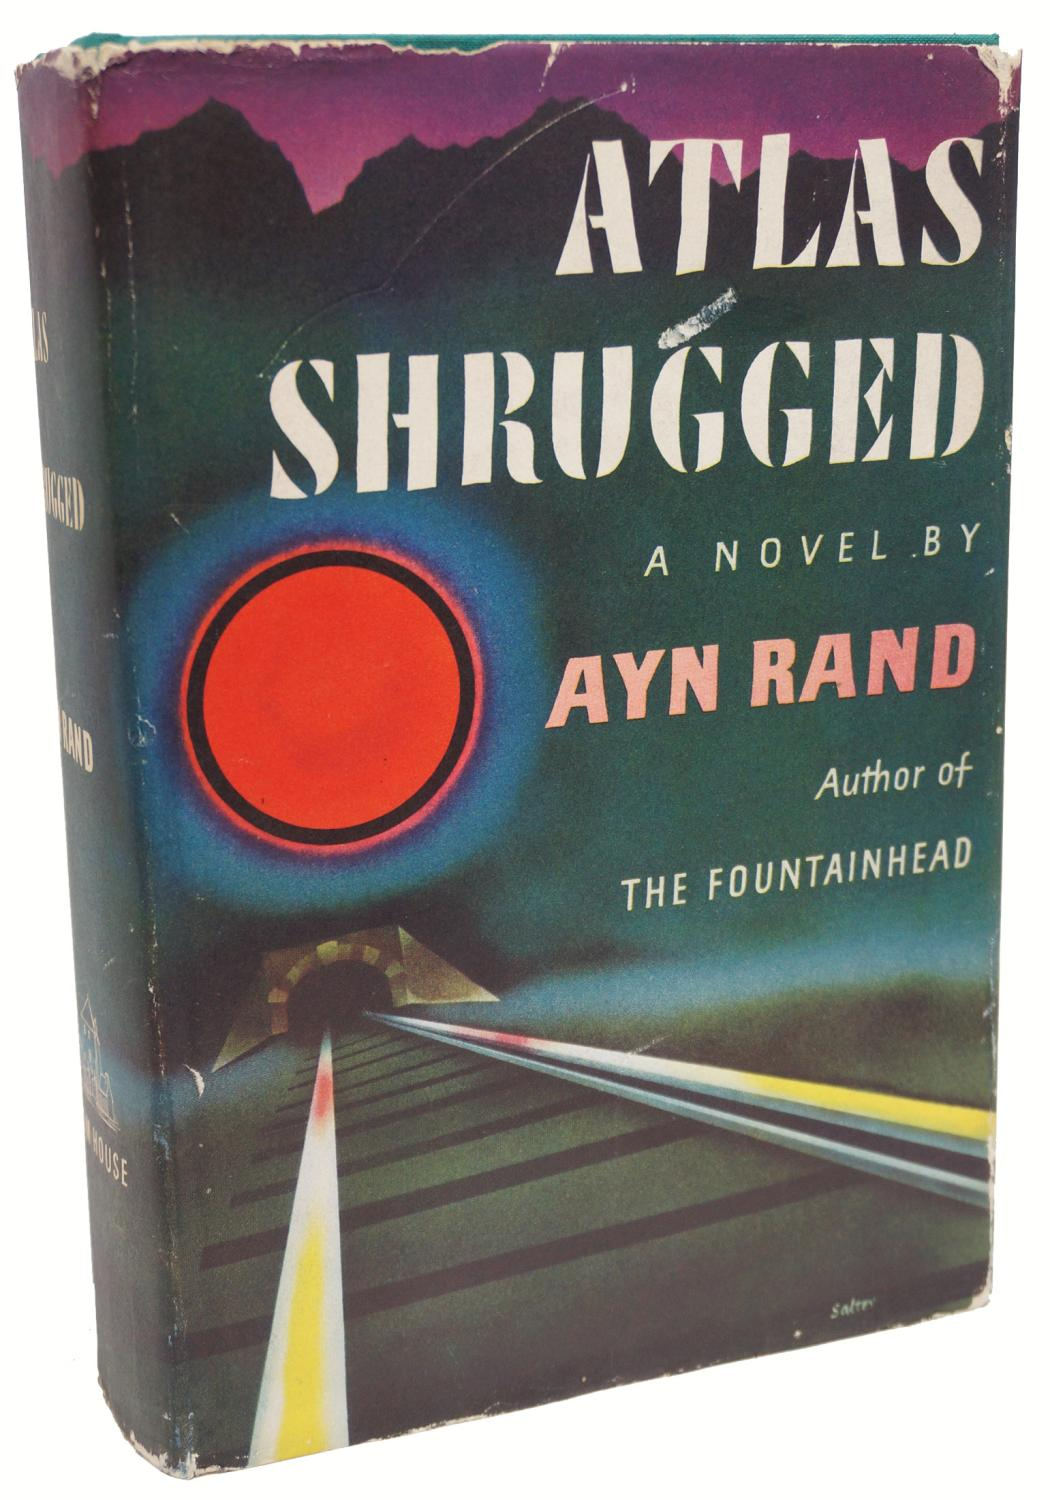 ayn rand s the fountainhead individualistic power The ayn rand lexicon: this mini-encyclopedia of objectivism is compiled from ayn rand's statements on some 400 topics in philosophy, economics, psychology and history.